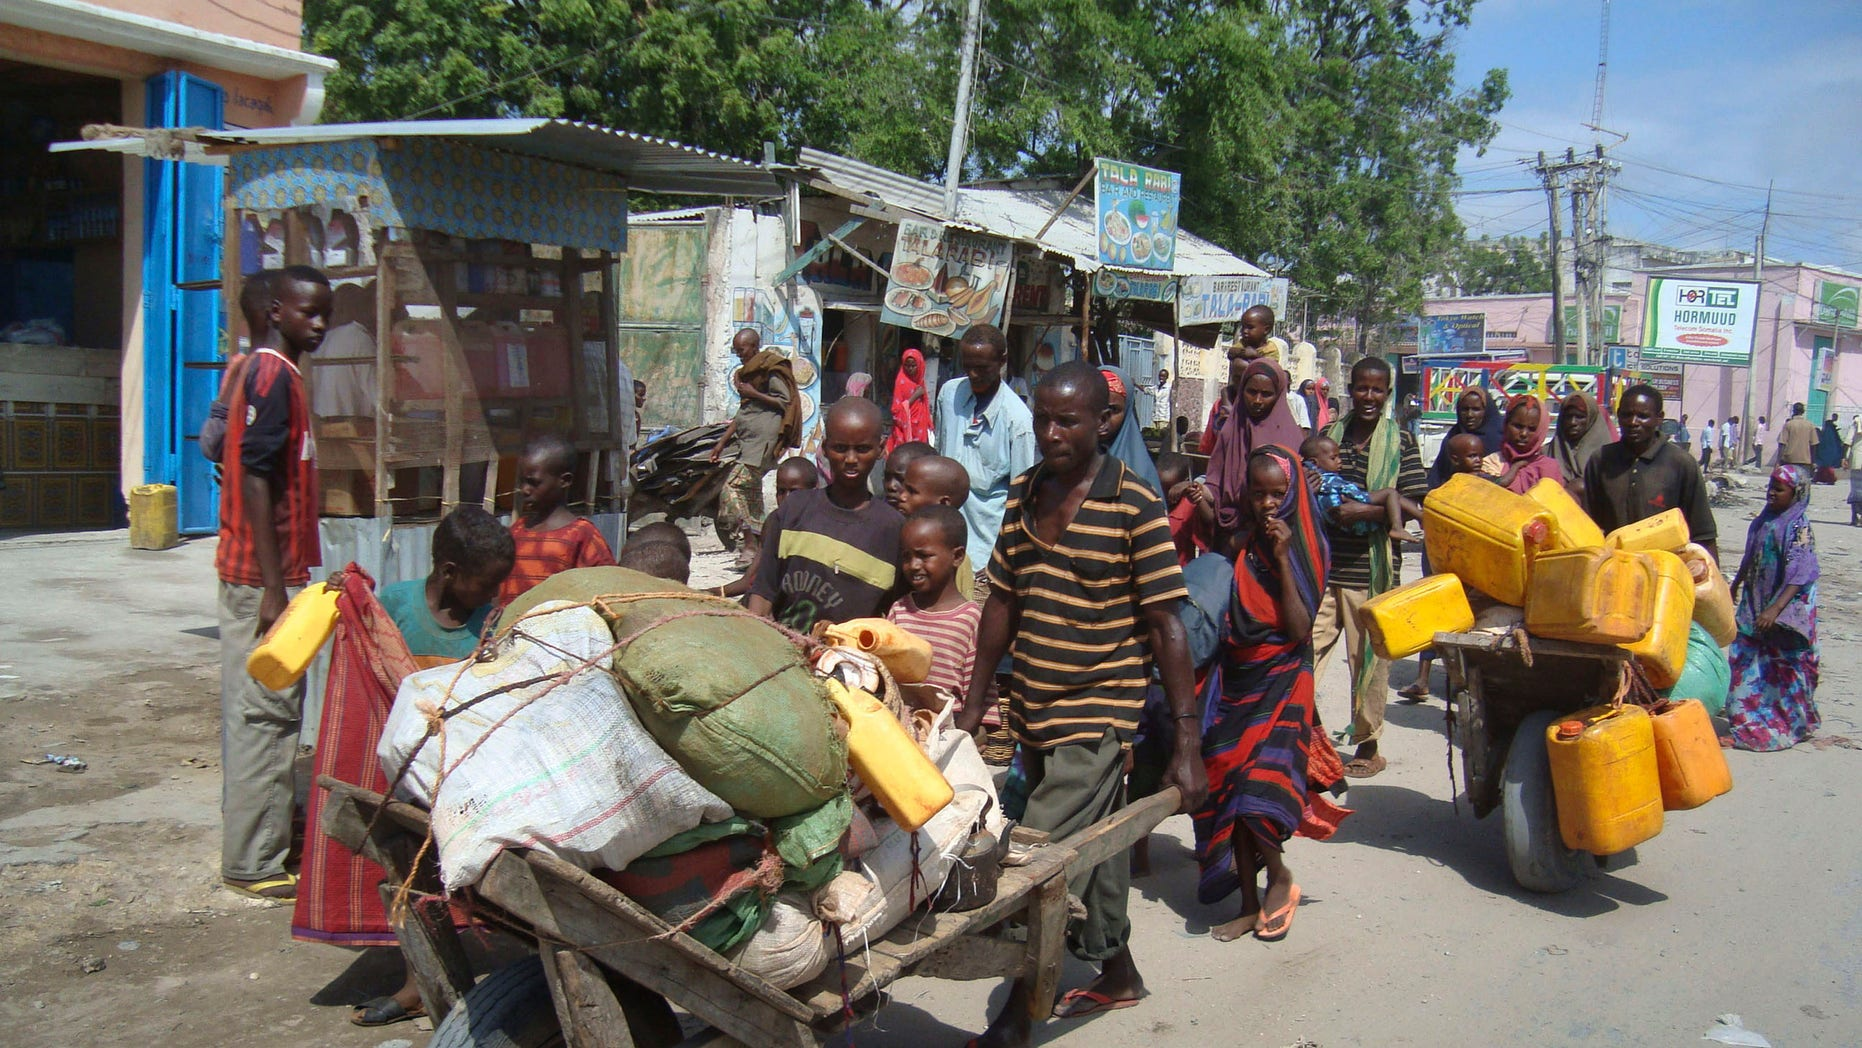 Somalis from southern Somalia carrying their belongings make their way to a new camp for internally displaced people in Mogadishu Somalia, Thursday July, 28, 2011.